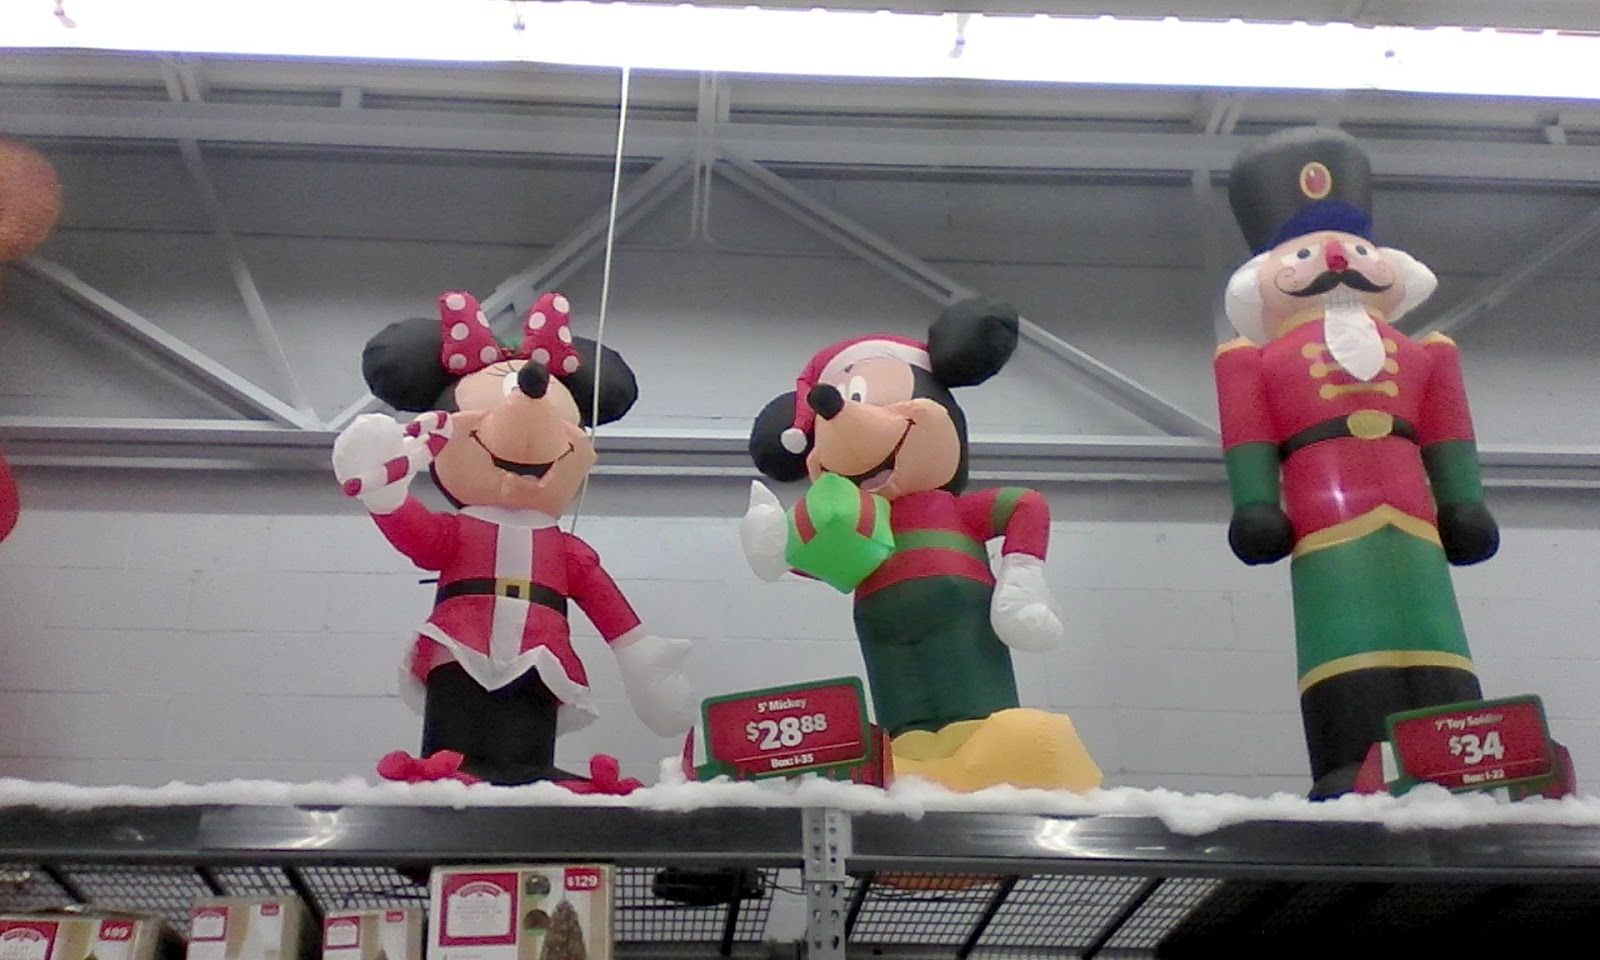 these disney christmas blow up yard decorations were up as early as oct 11th at the local walmart a bit too early for christmas dont ya think - Mickey Mouse Christmas Blow Up